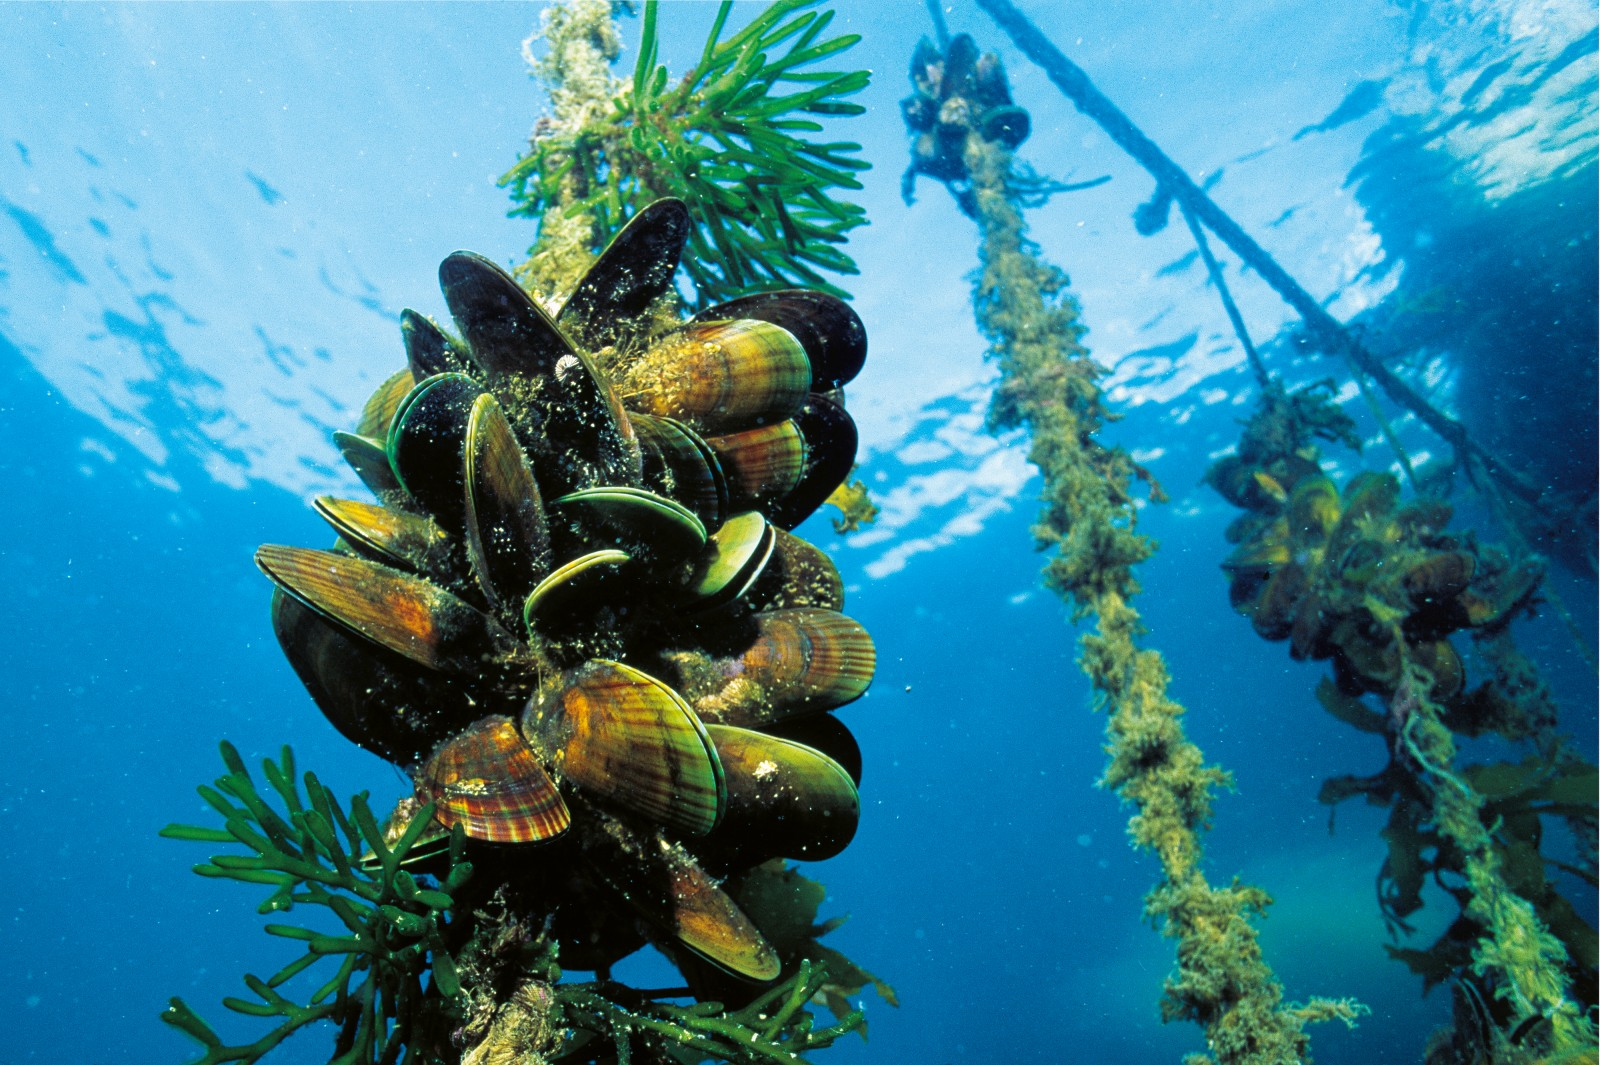 Mussels are grown attached to ropes in clean open water with a good tidal flow. Supreme water quality is important, because the bivalves will filter out and accumulate any particulate contaminants, such as algae from toxic blooms or bacteria and viruses washed from nearby land.